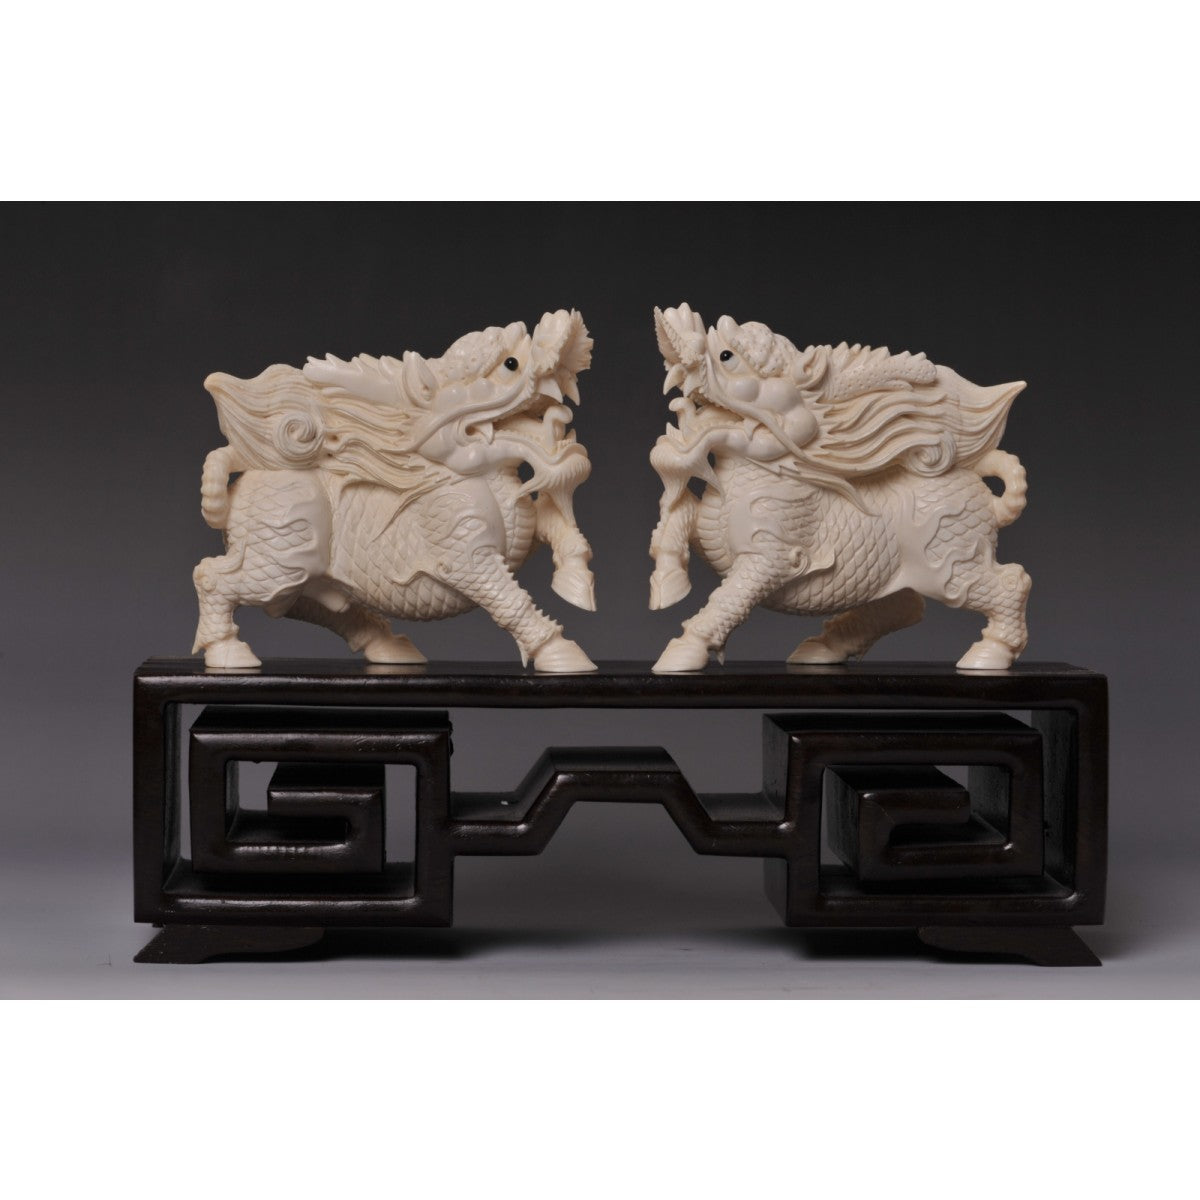 Mammoth Ivory- 2 Foo Dog